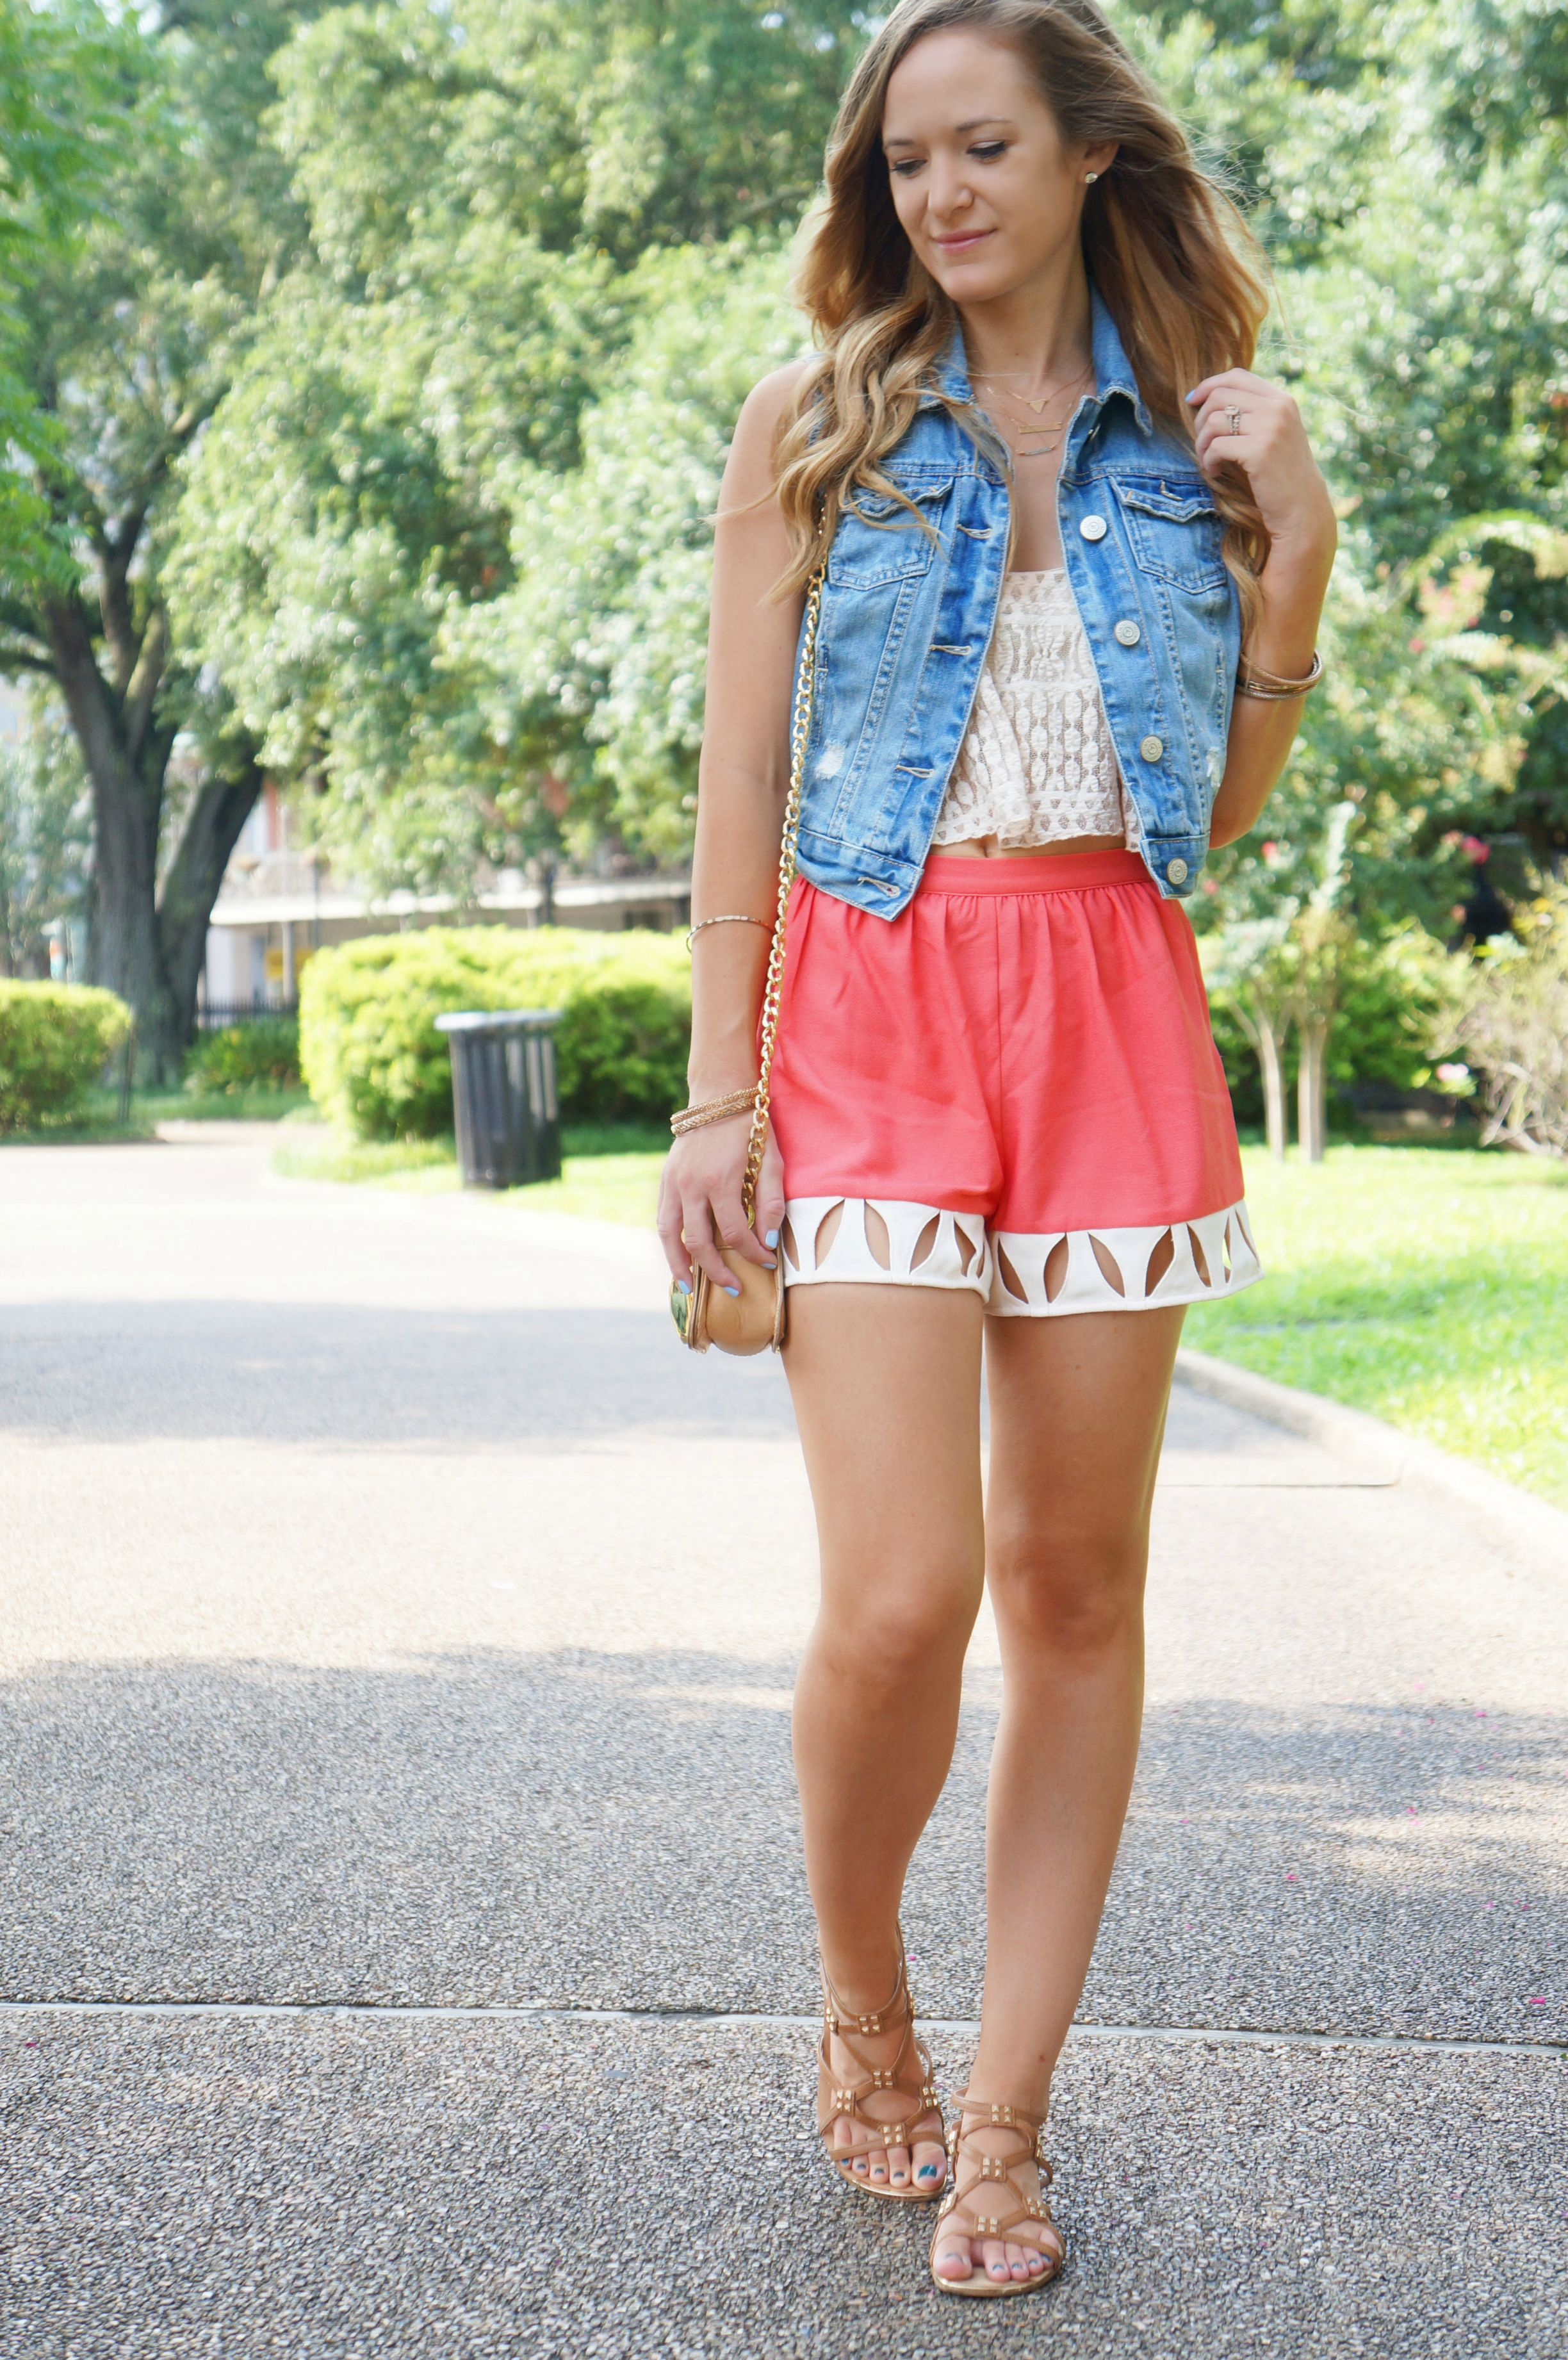 aeropostale vest, bastion & co nyc, sugar lips shorts, marshalls sandals, marshalls top, badgley mischka bag